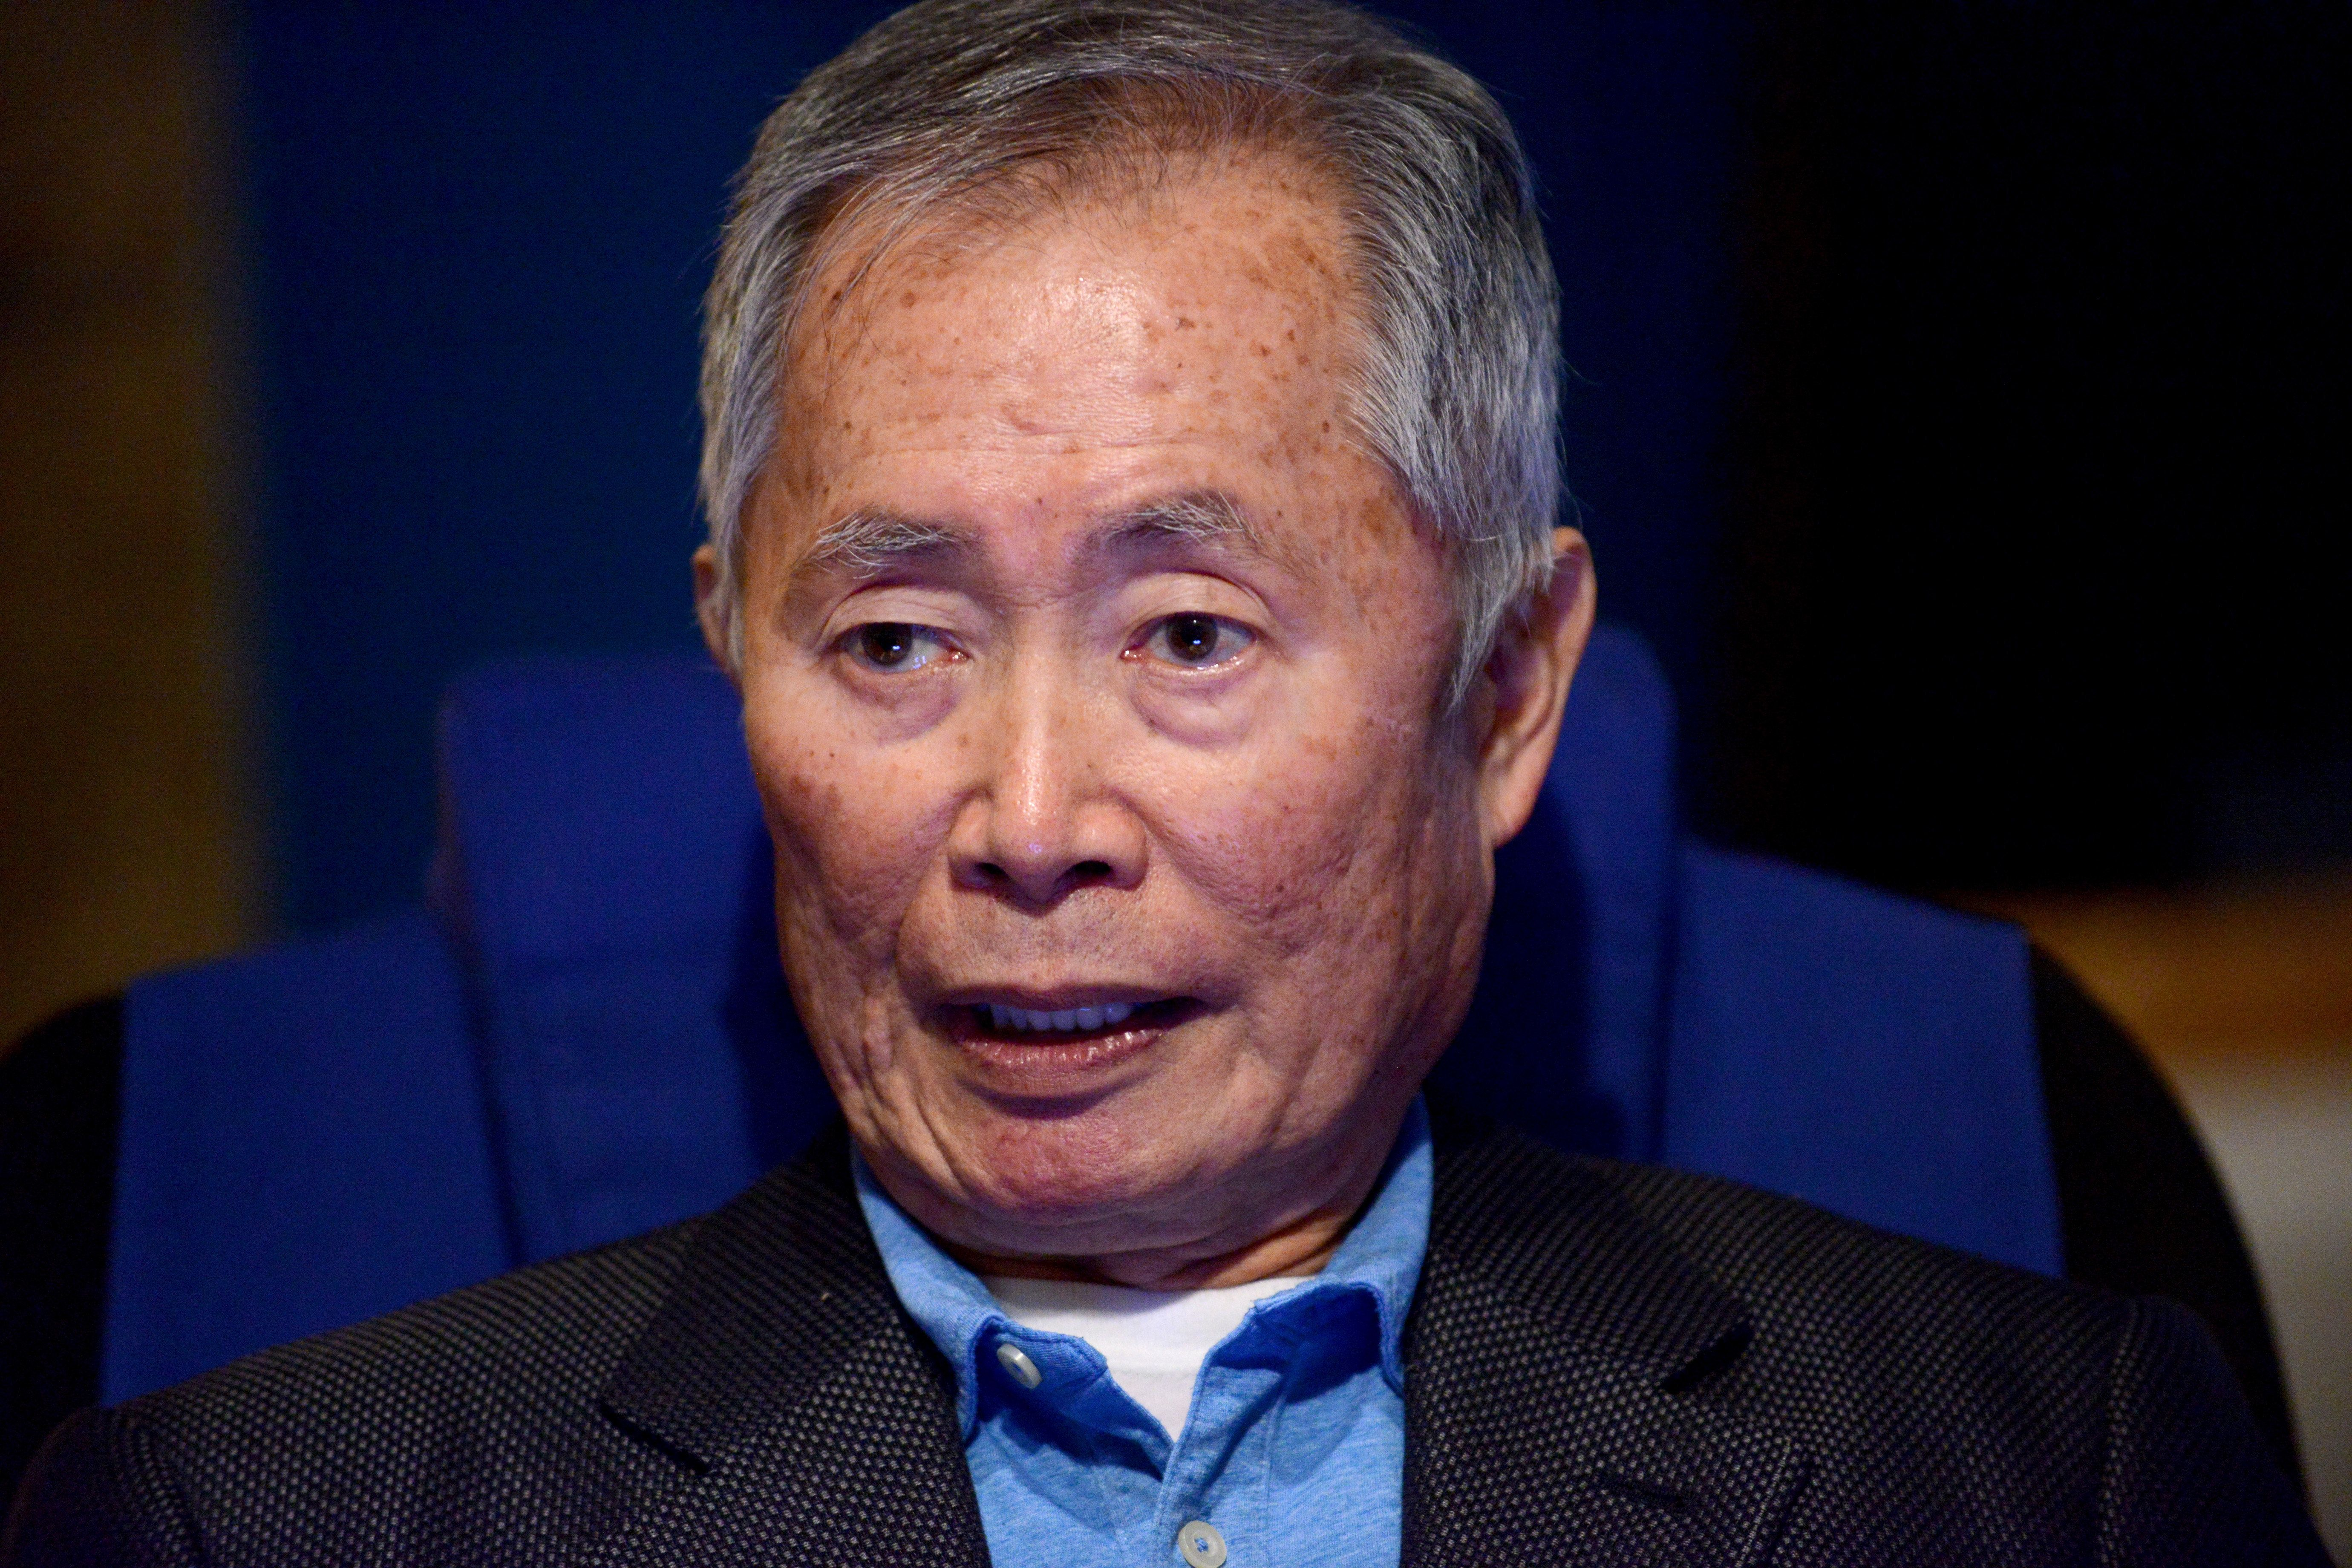 George Takei says events in sexual assault allegation 'simply did not occur'